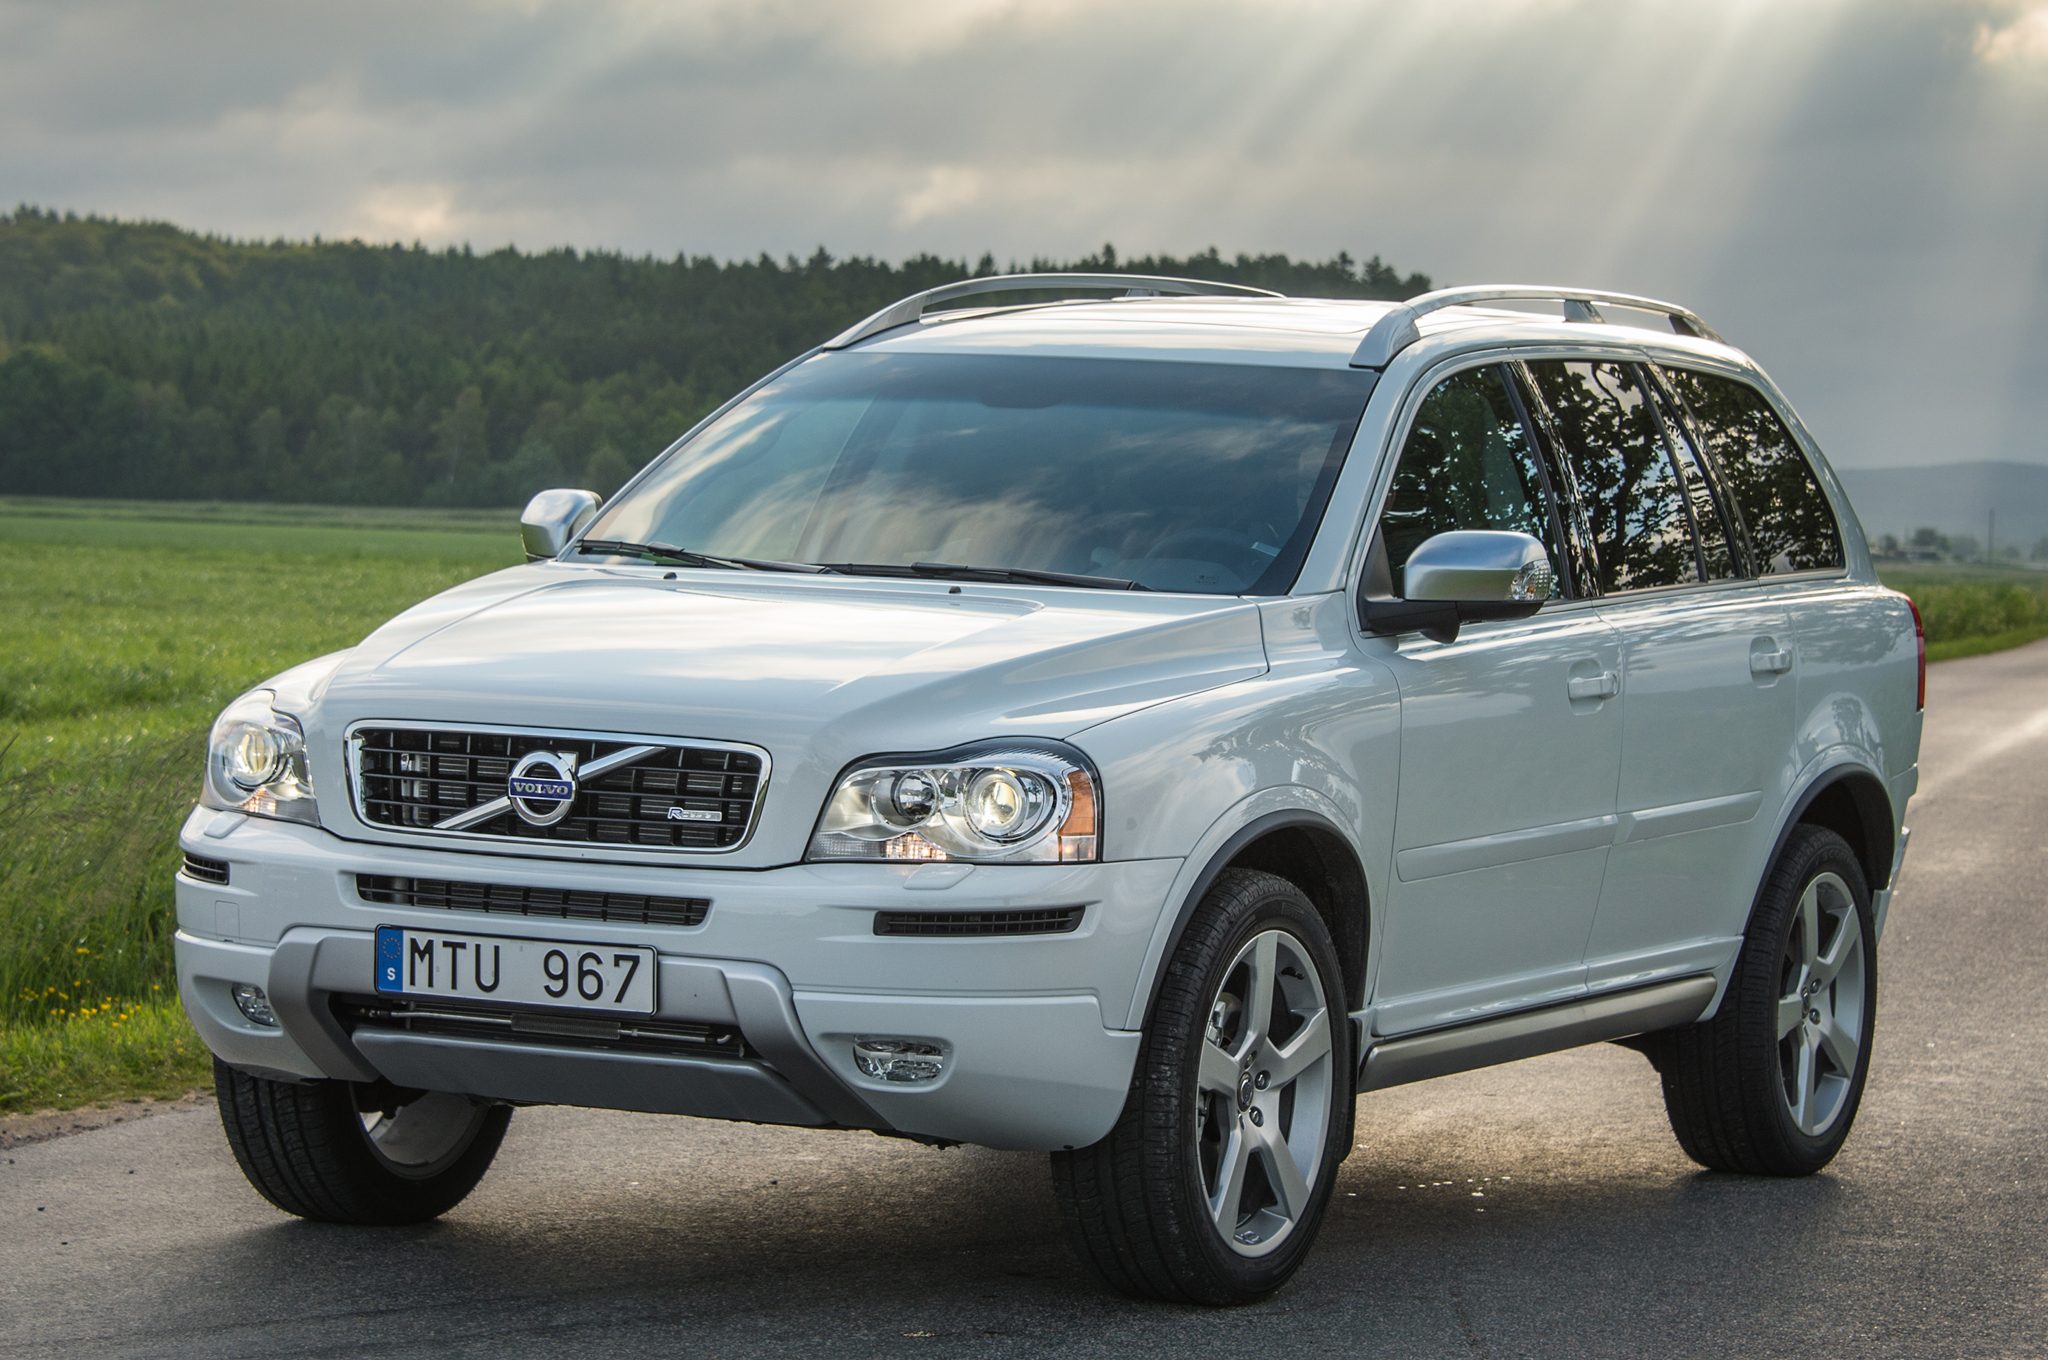 Facelift Cars - 2014 Volvo XC90 - front-view-04